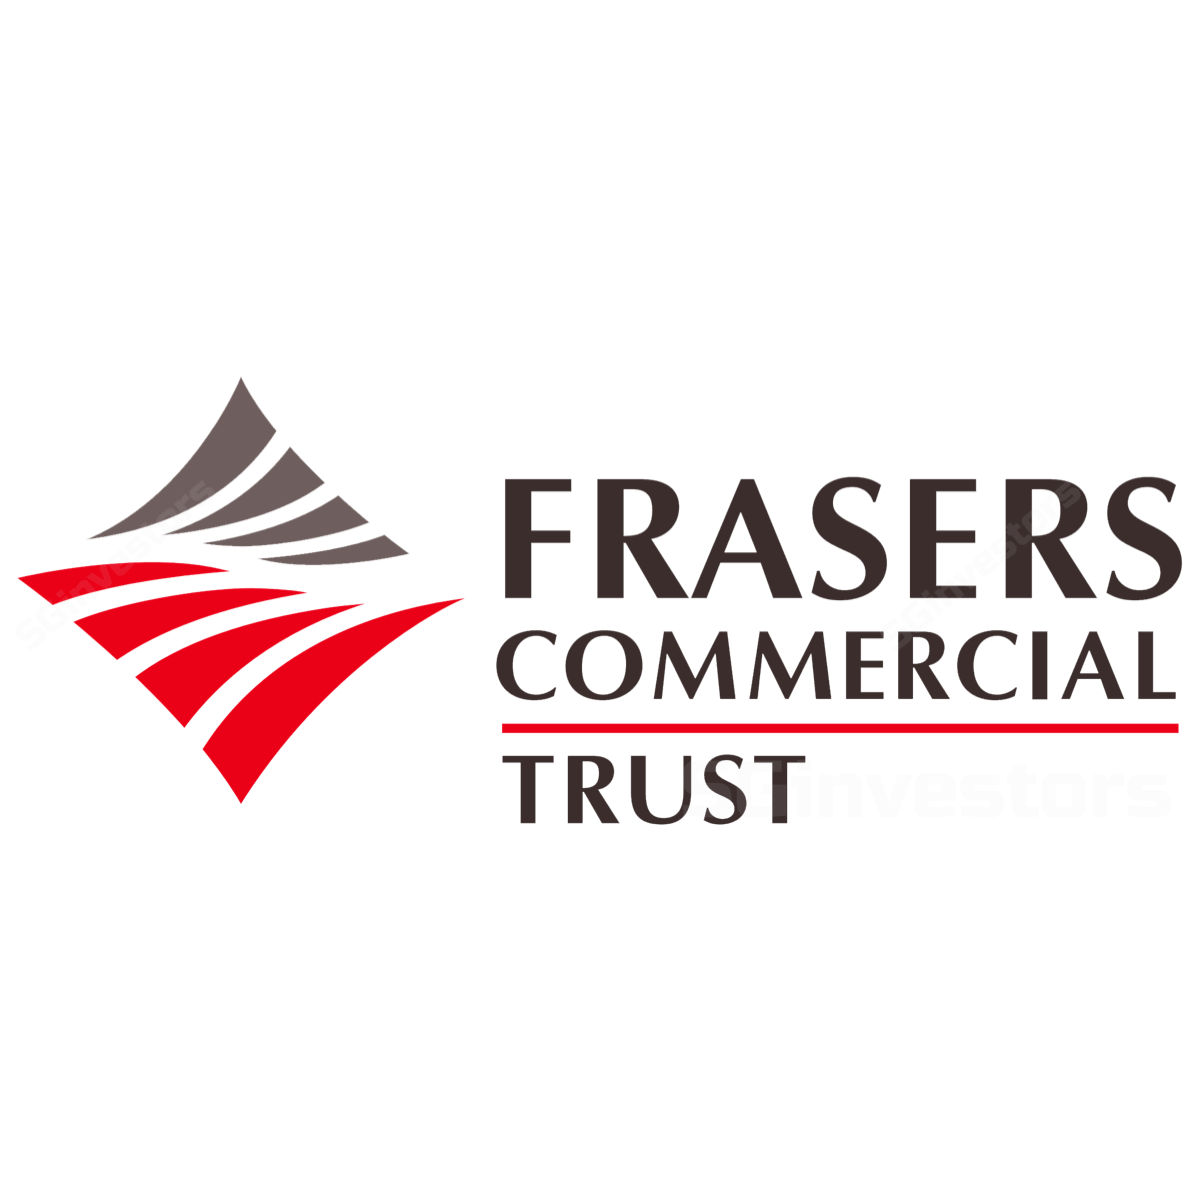 Frasers Commercial Trust - OCBC Investment 2017-09-04: Positive Indications In Australia And Singapore